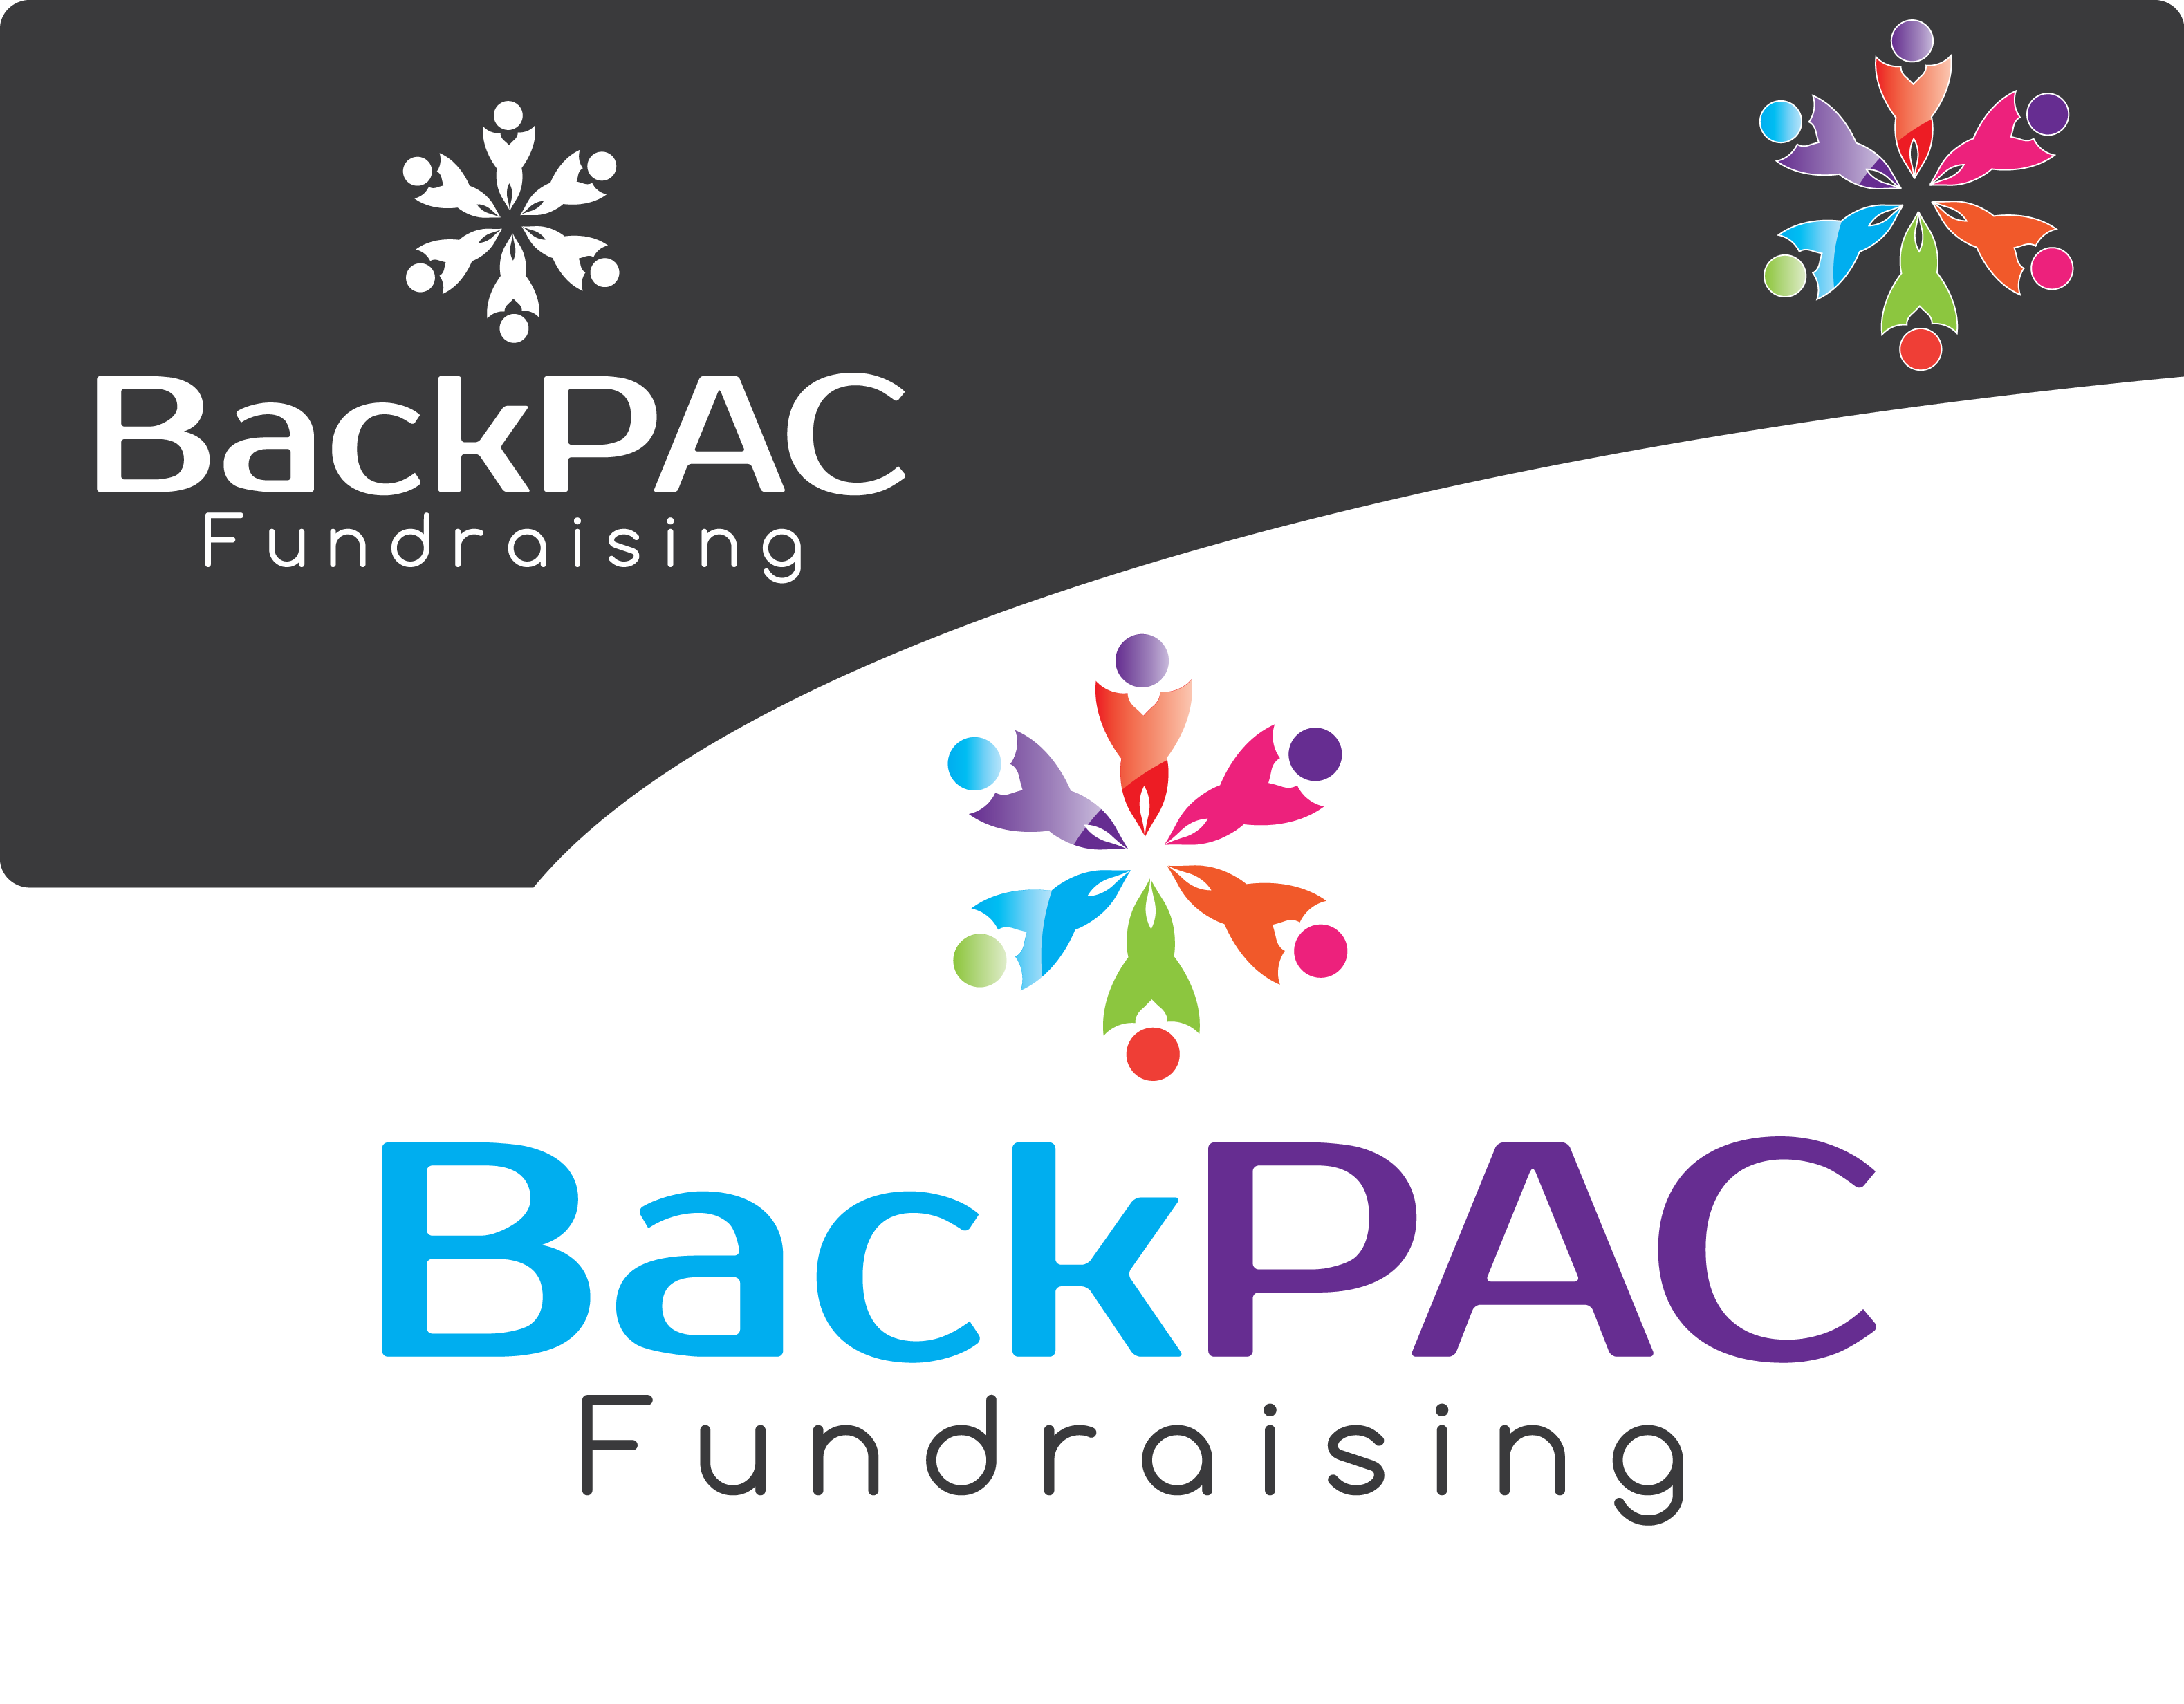 Logo Design by 354studio - Entry No. 44 in the Logo Design Contest Imaginative Logo Design for BackPAC Fundraising.